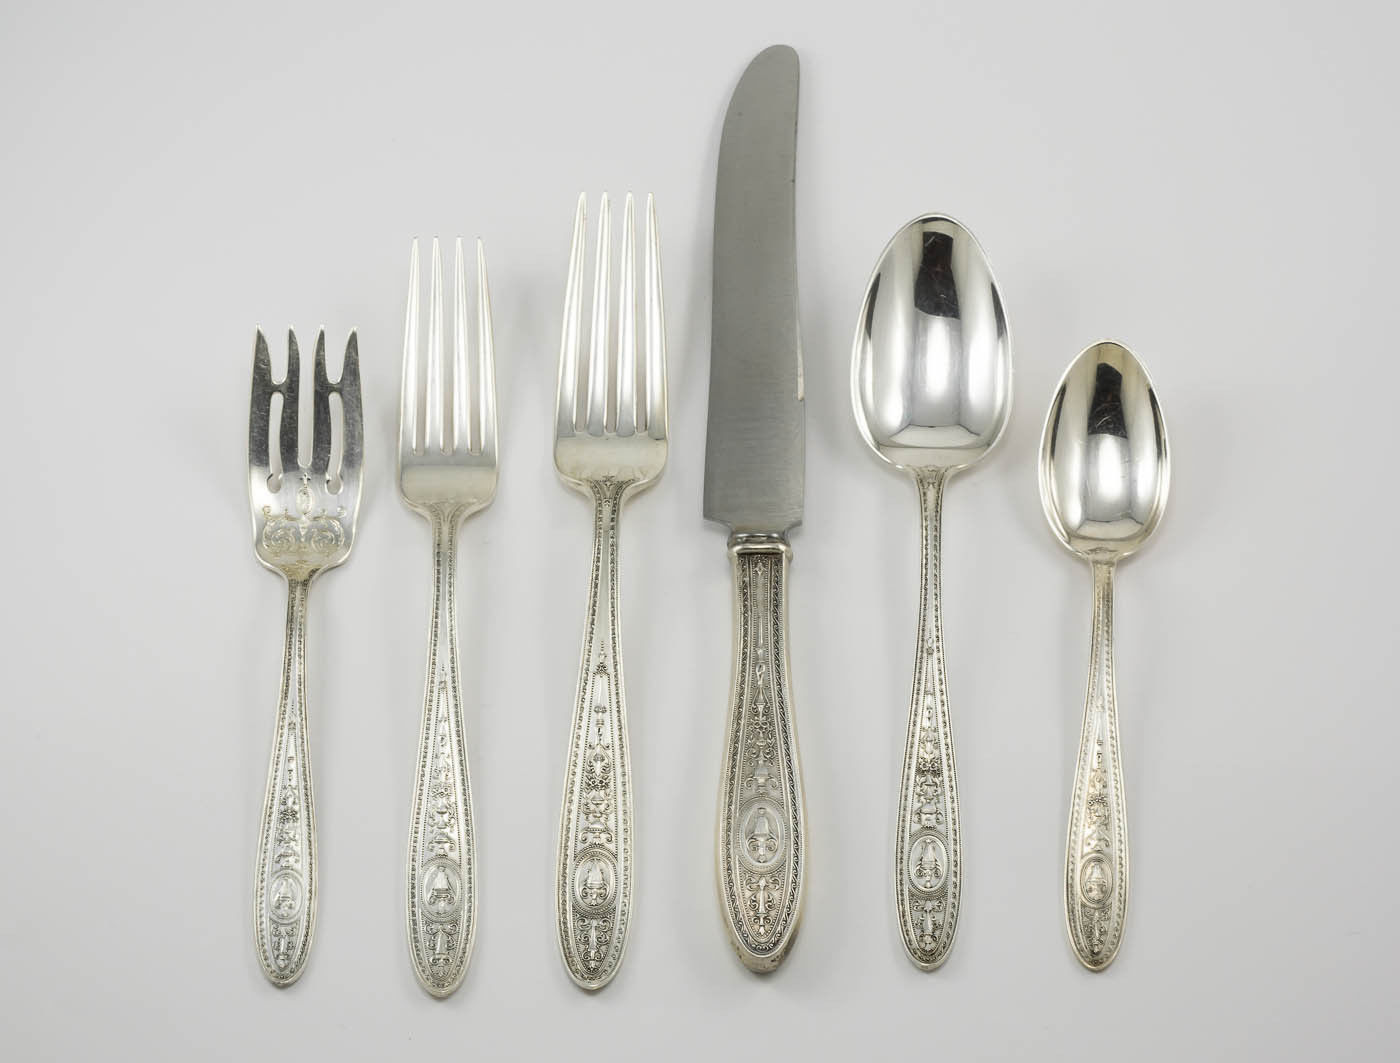 Wedgwood by International Sterling Silver Flatware Service for 8 Set 40 Pieces